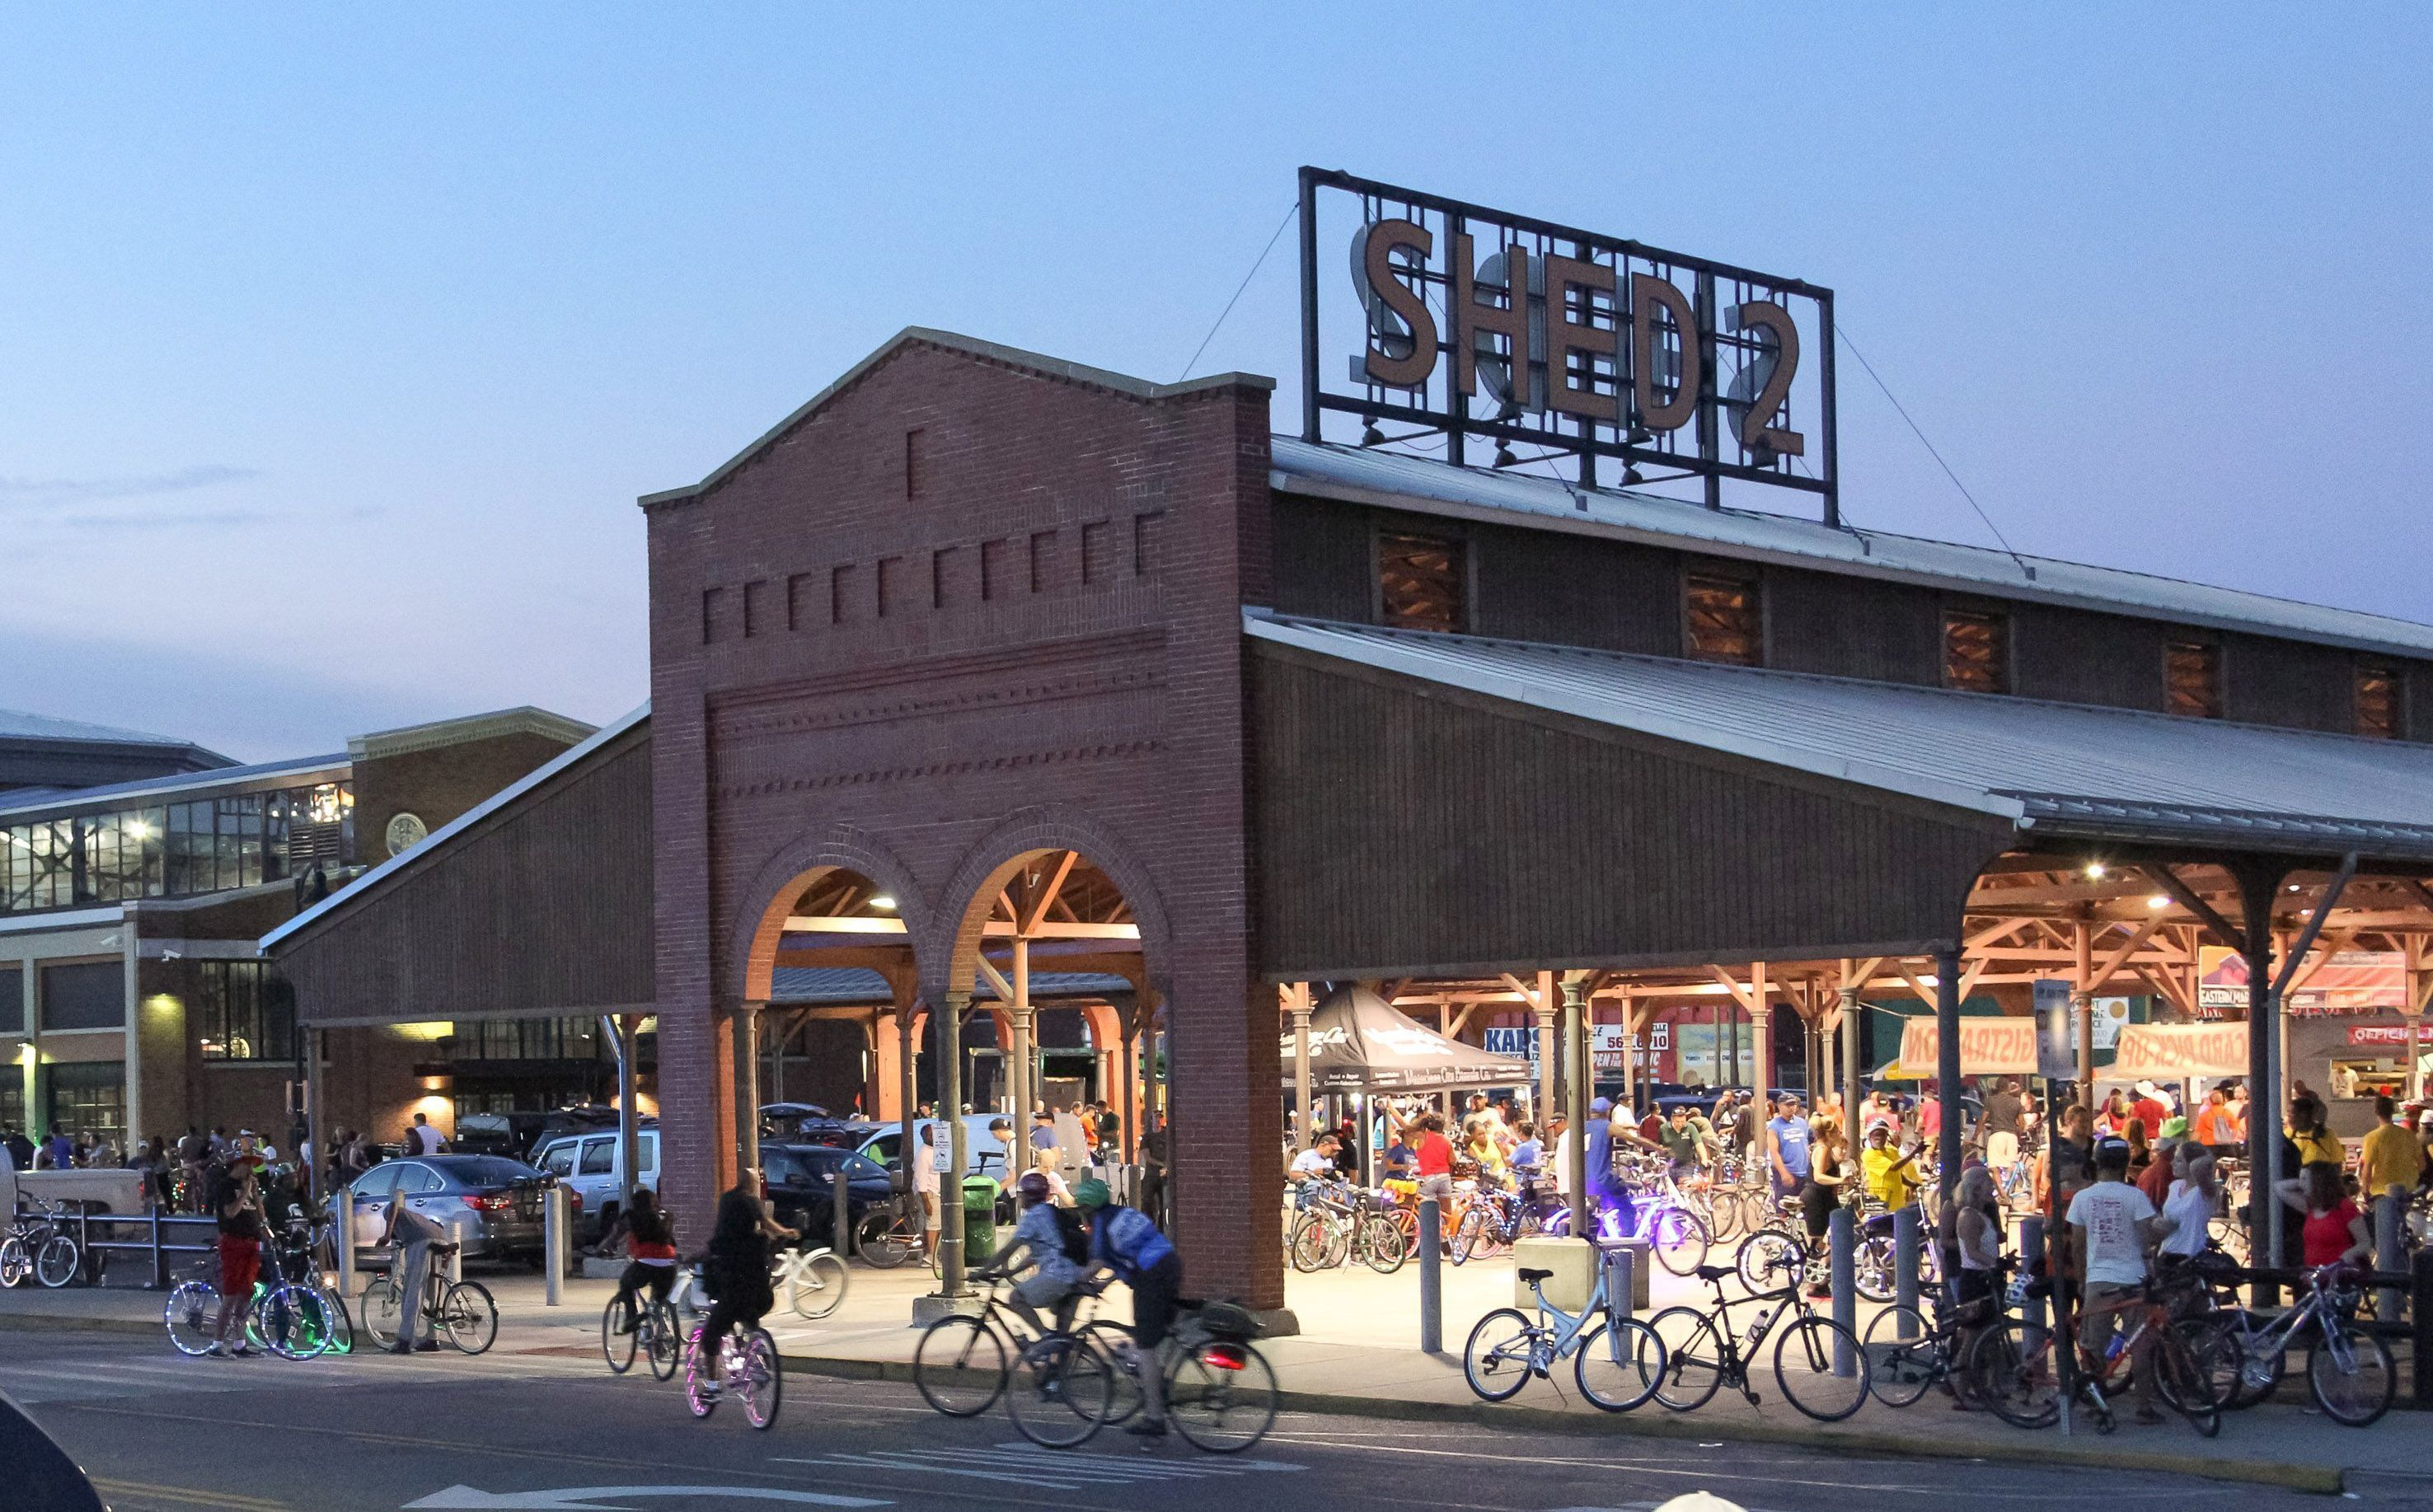 Thousands of bicycle enthusiasts took part in a murals themed Slow Roll centered around Shed 2 in Eastern Market in September 2016.